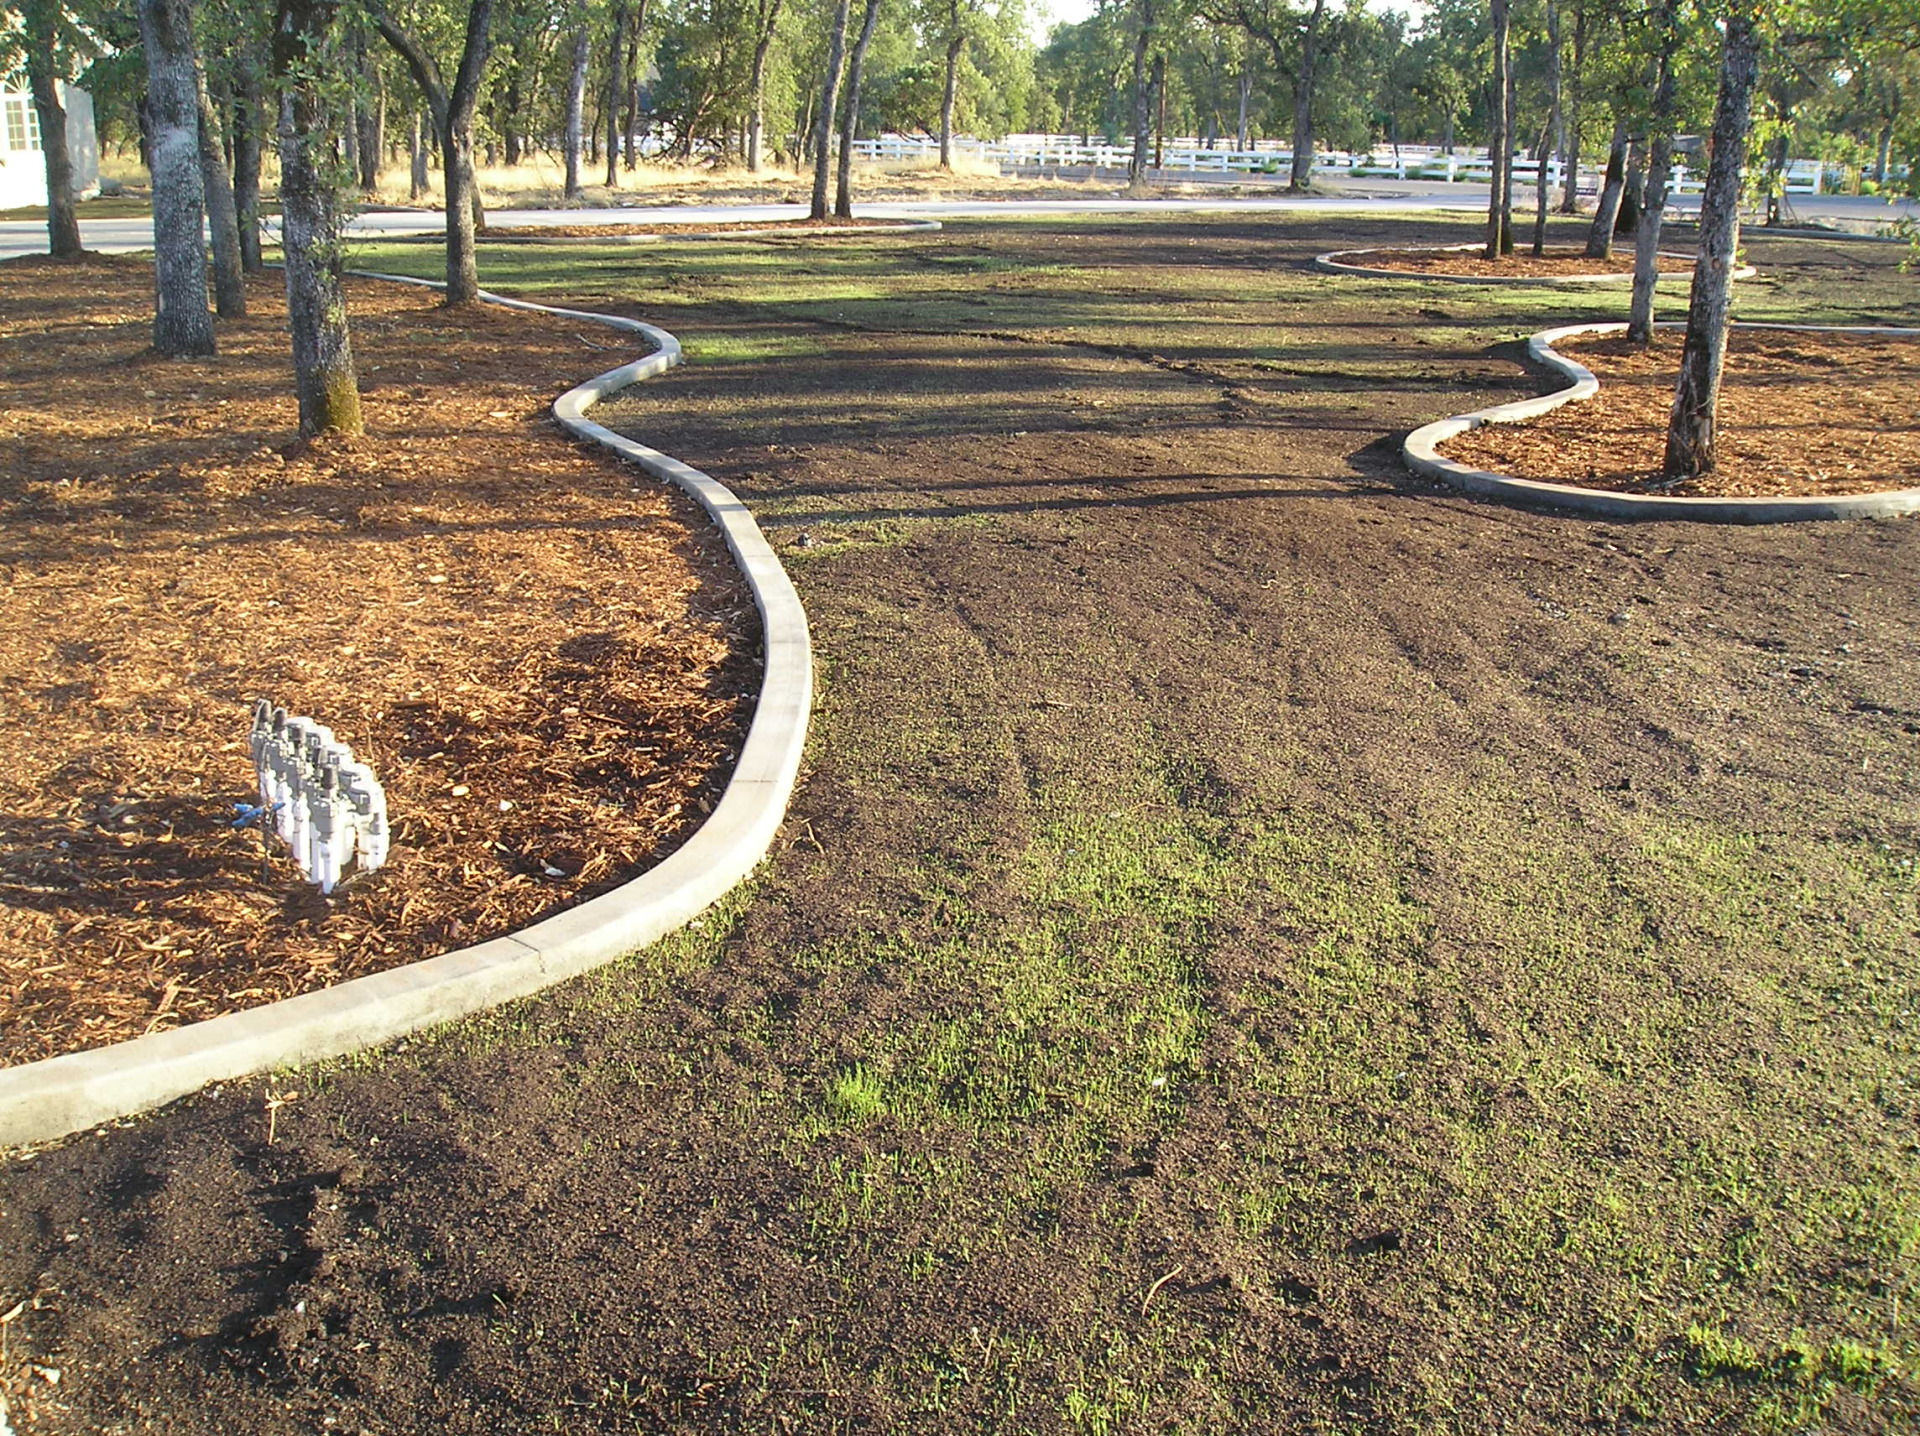 Irrigation and seeding lawns